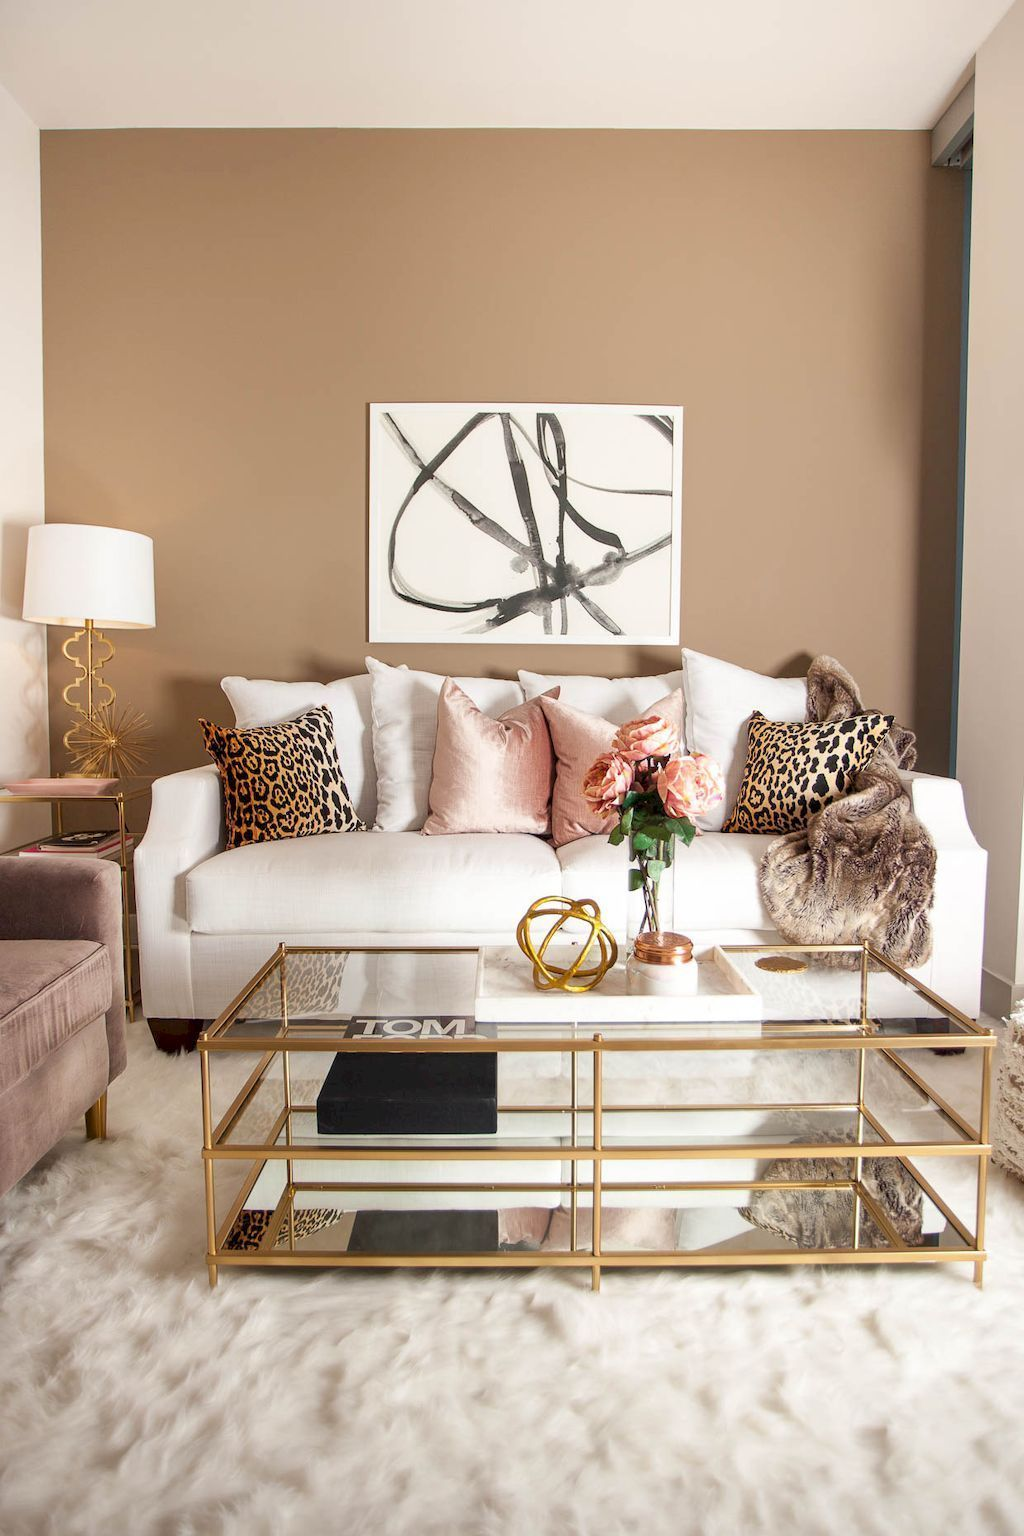 75 First Apartment Decorating Ideas on A Budget | Budget apartment ...